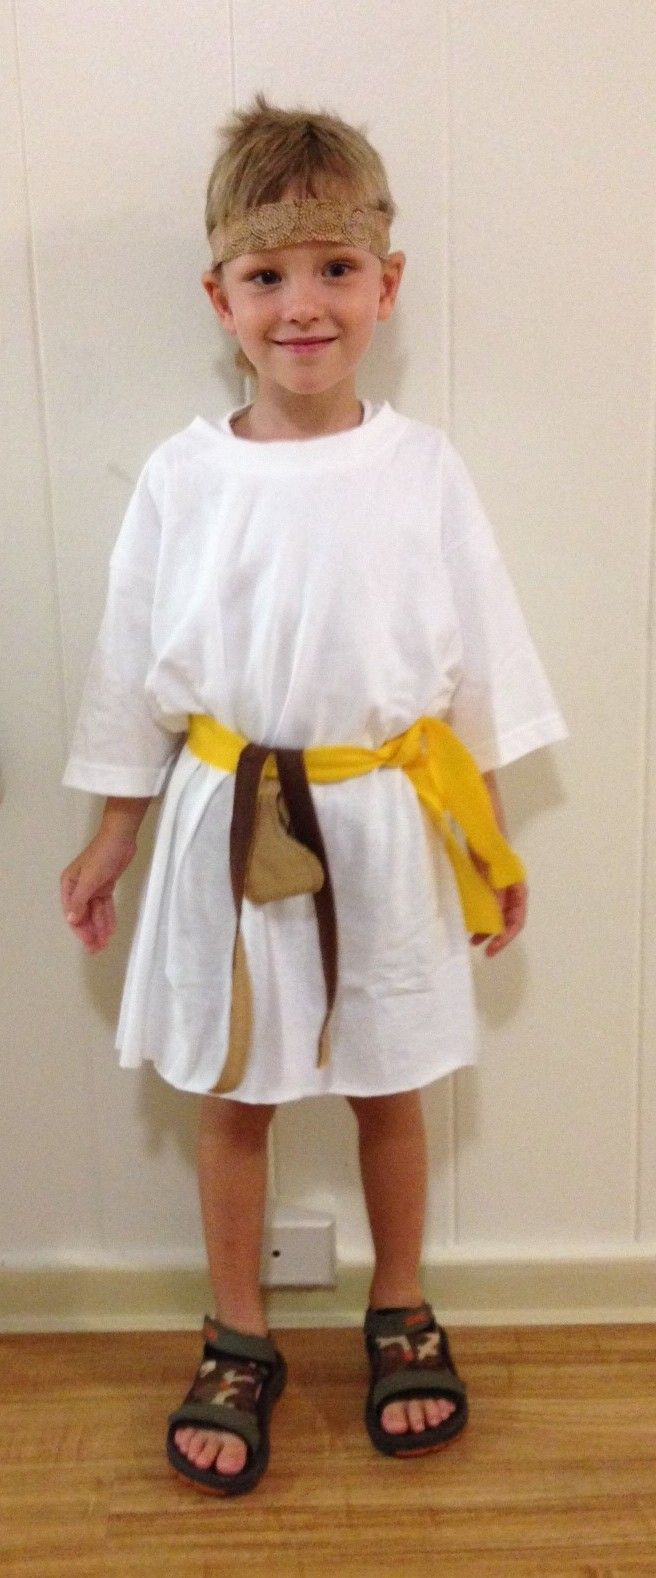 david and goliath costume - Google Search  sc 1 st  Pinterest & david and goliath costume - Google Search | Fall | Pinterest ...